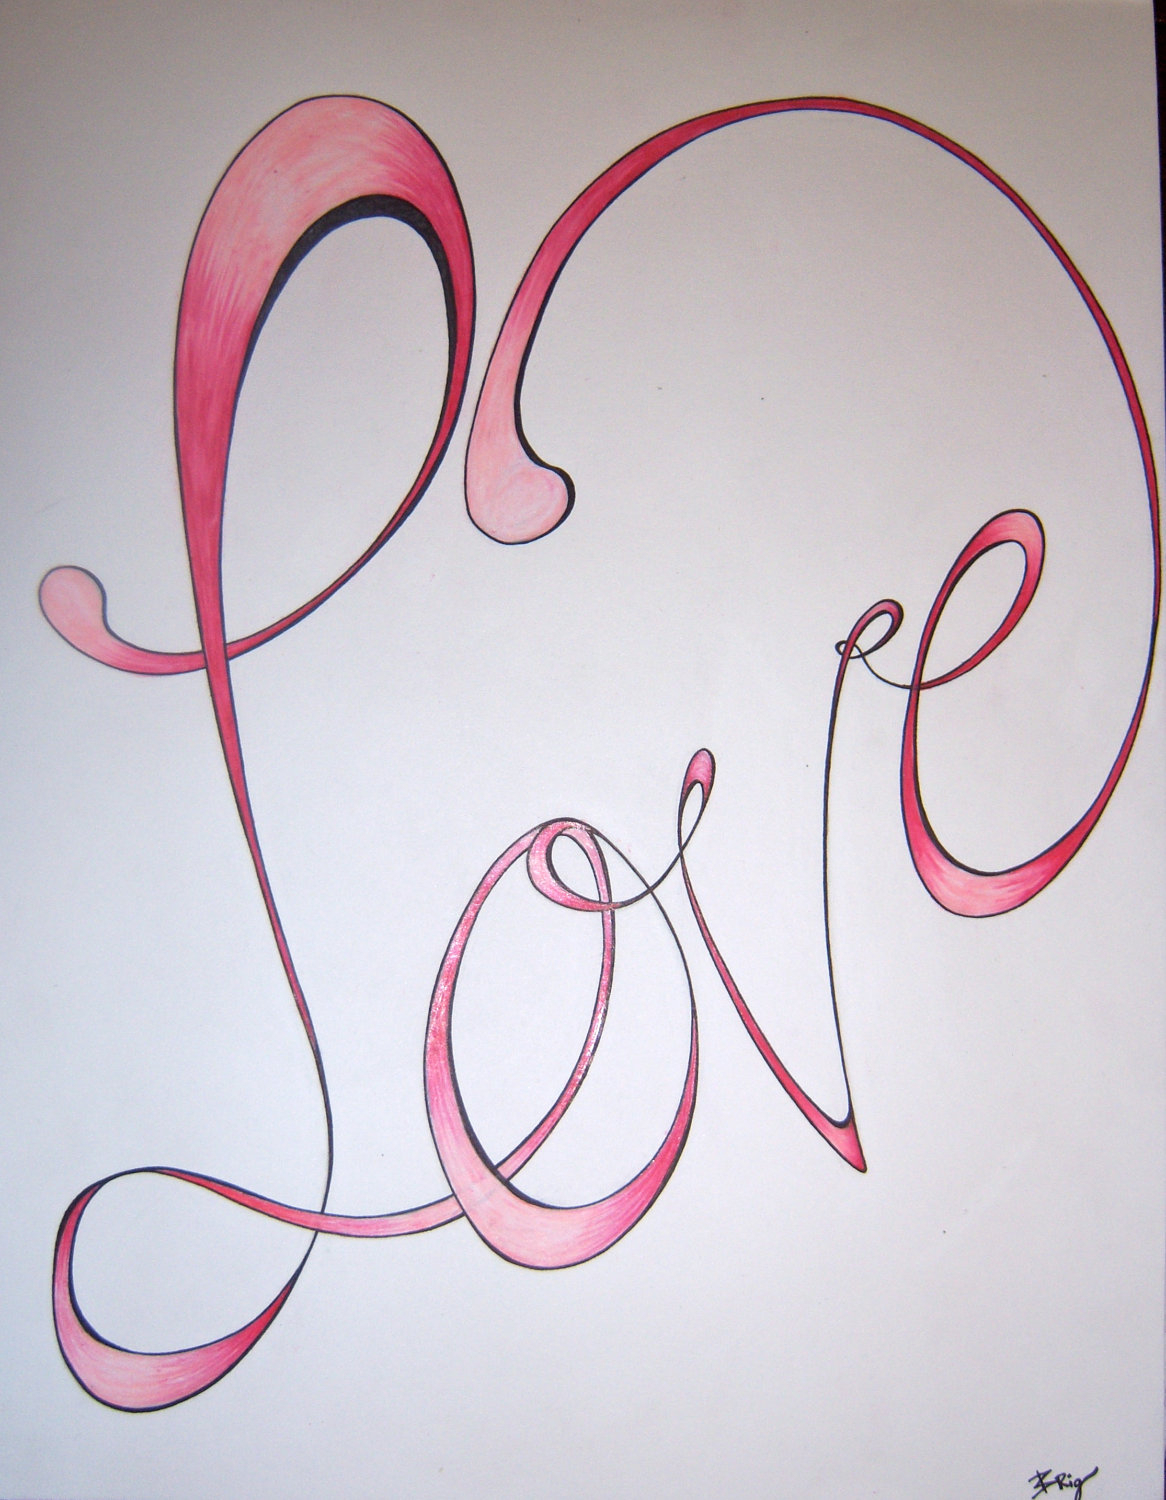 1166x1500 Pencil Drawings Of The Word Love Pencil Drawings Of The Word